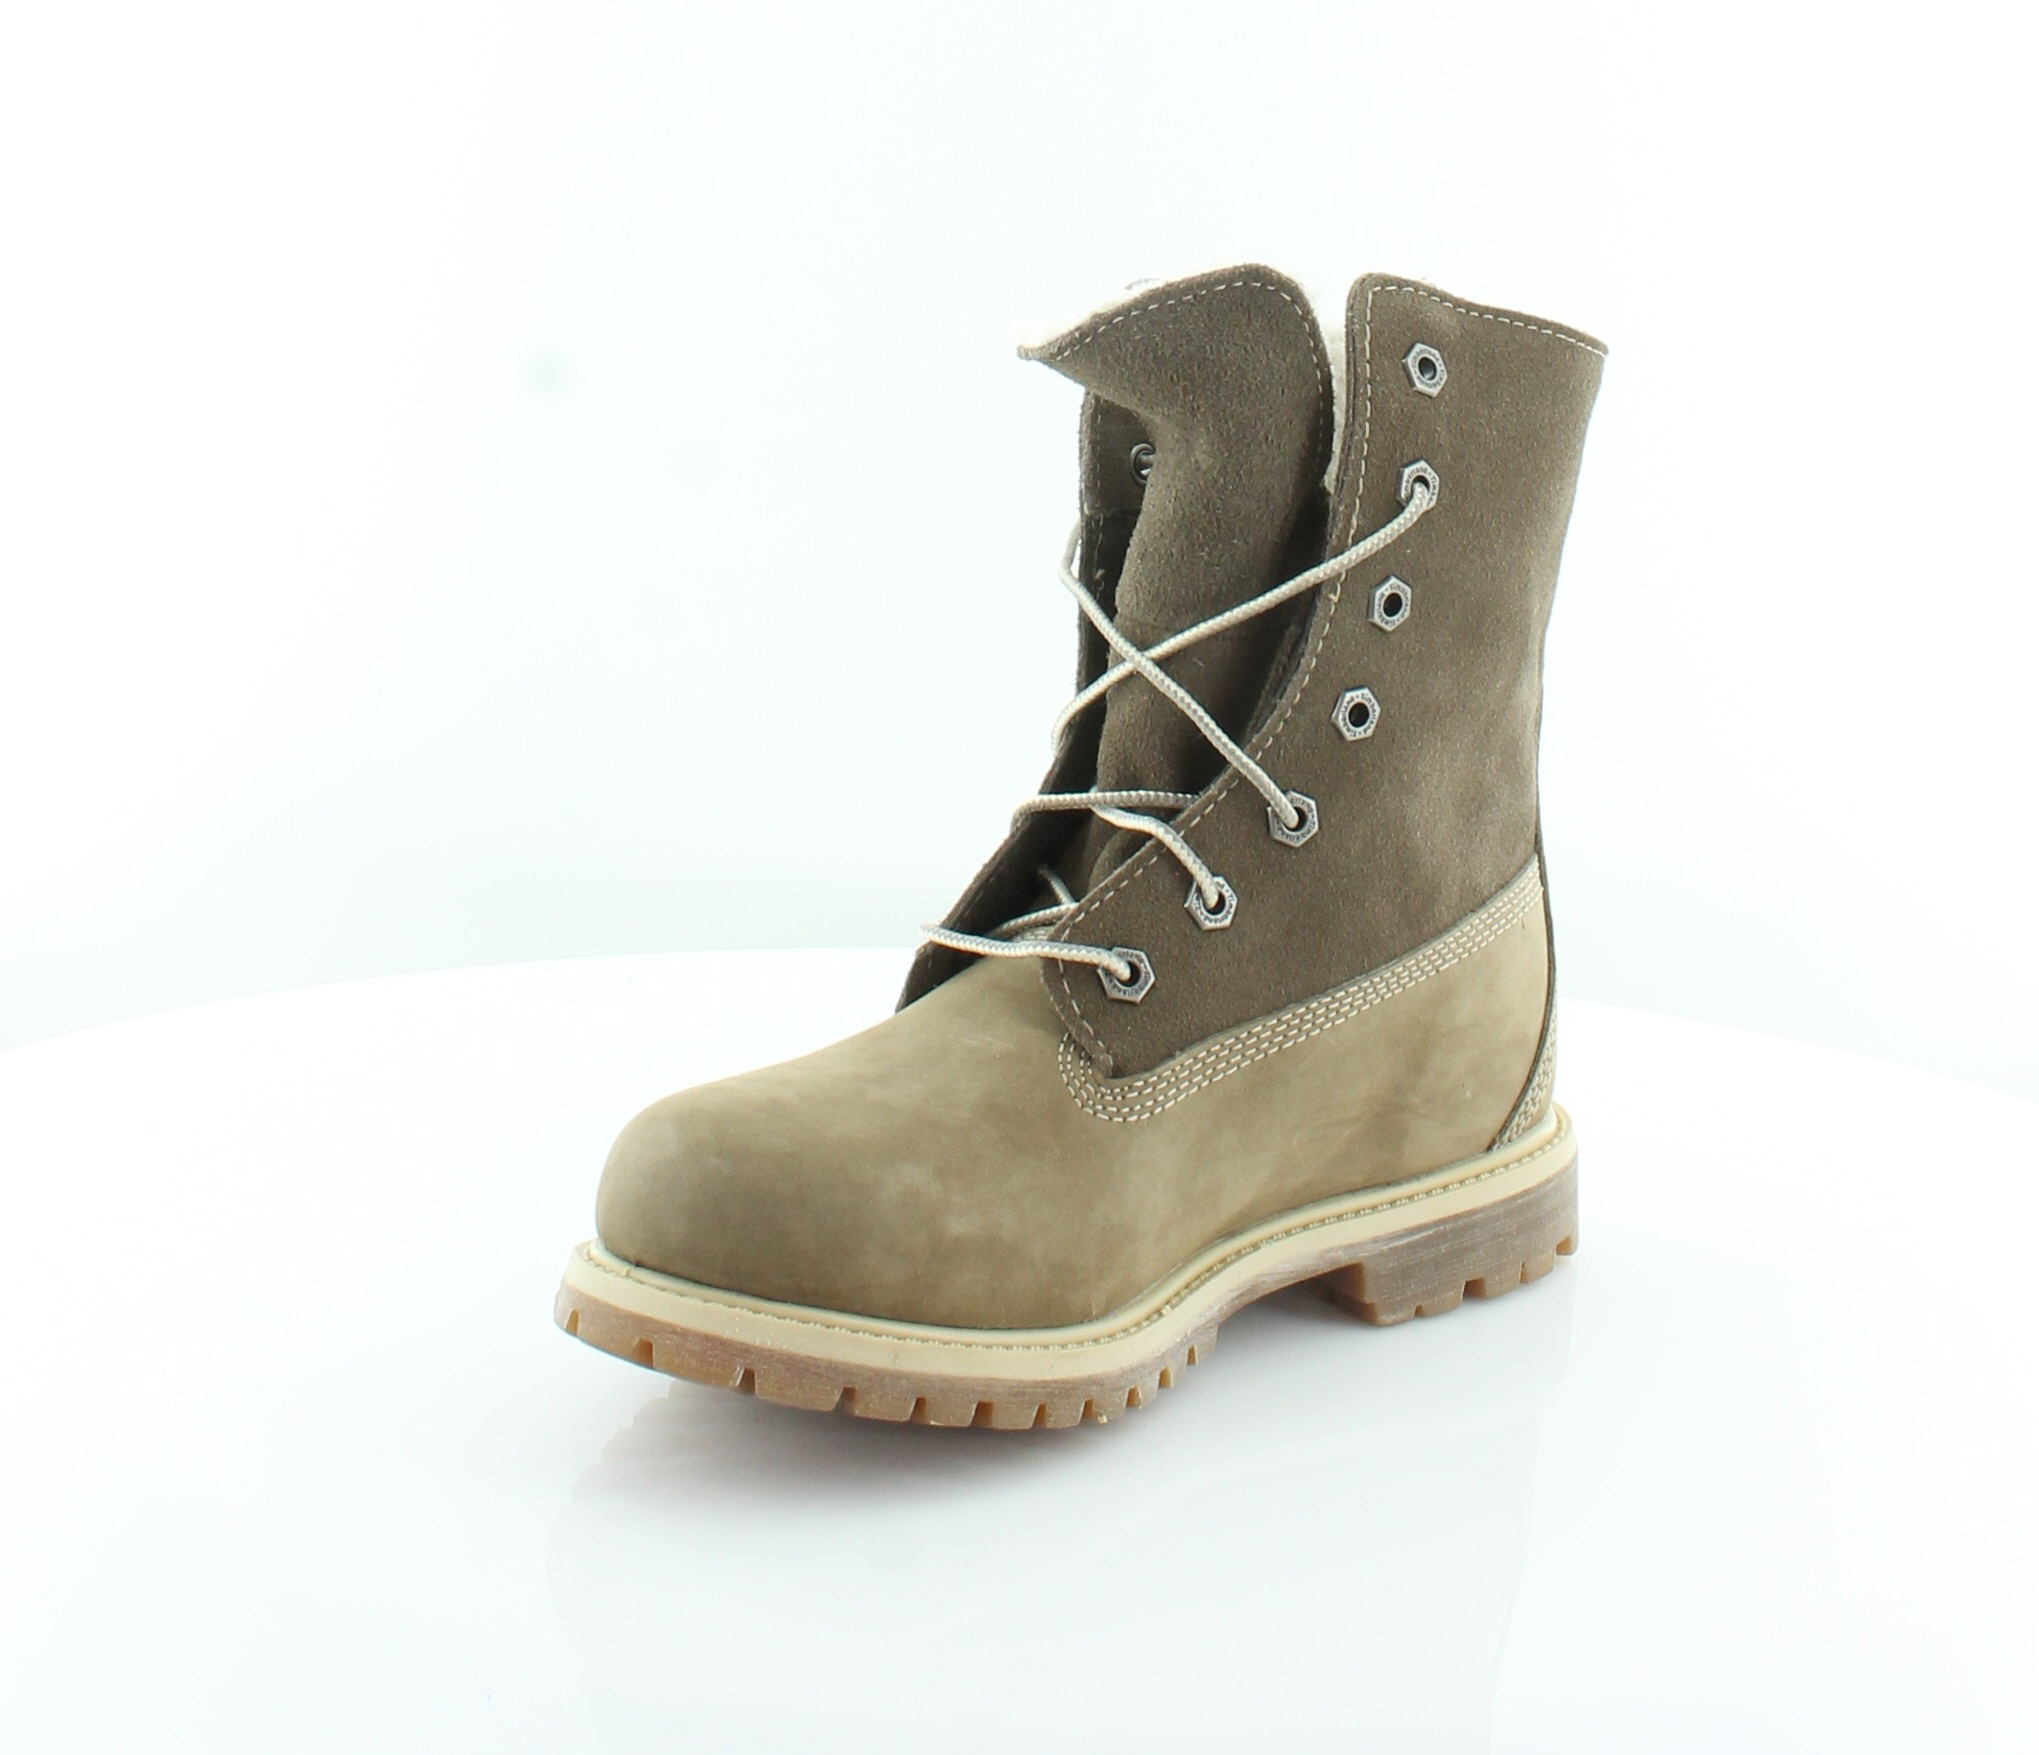 Timberland New Teddy Brown Womens Shoes Size 5.5 M Boots MSRP $165 1